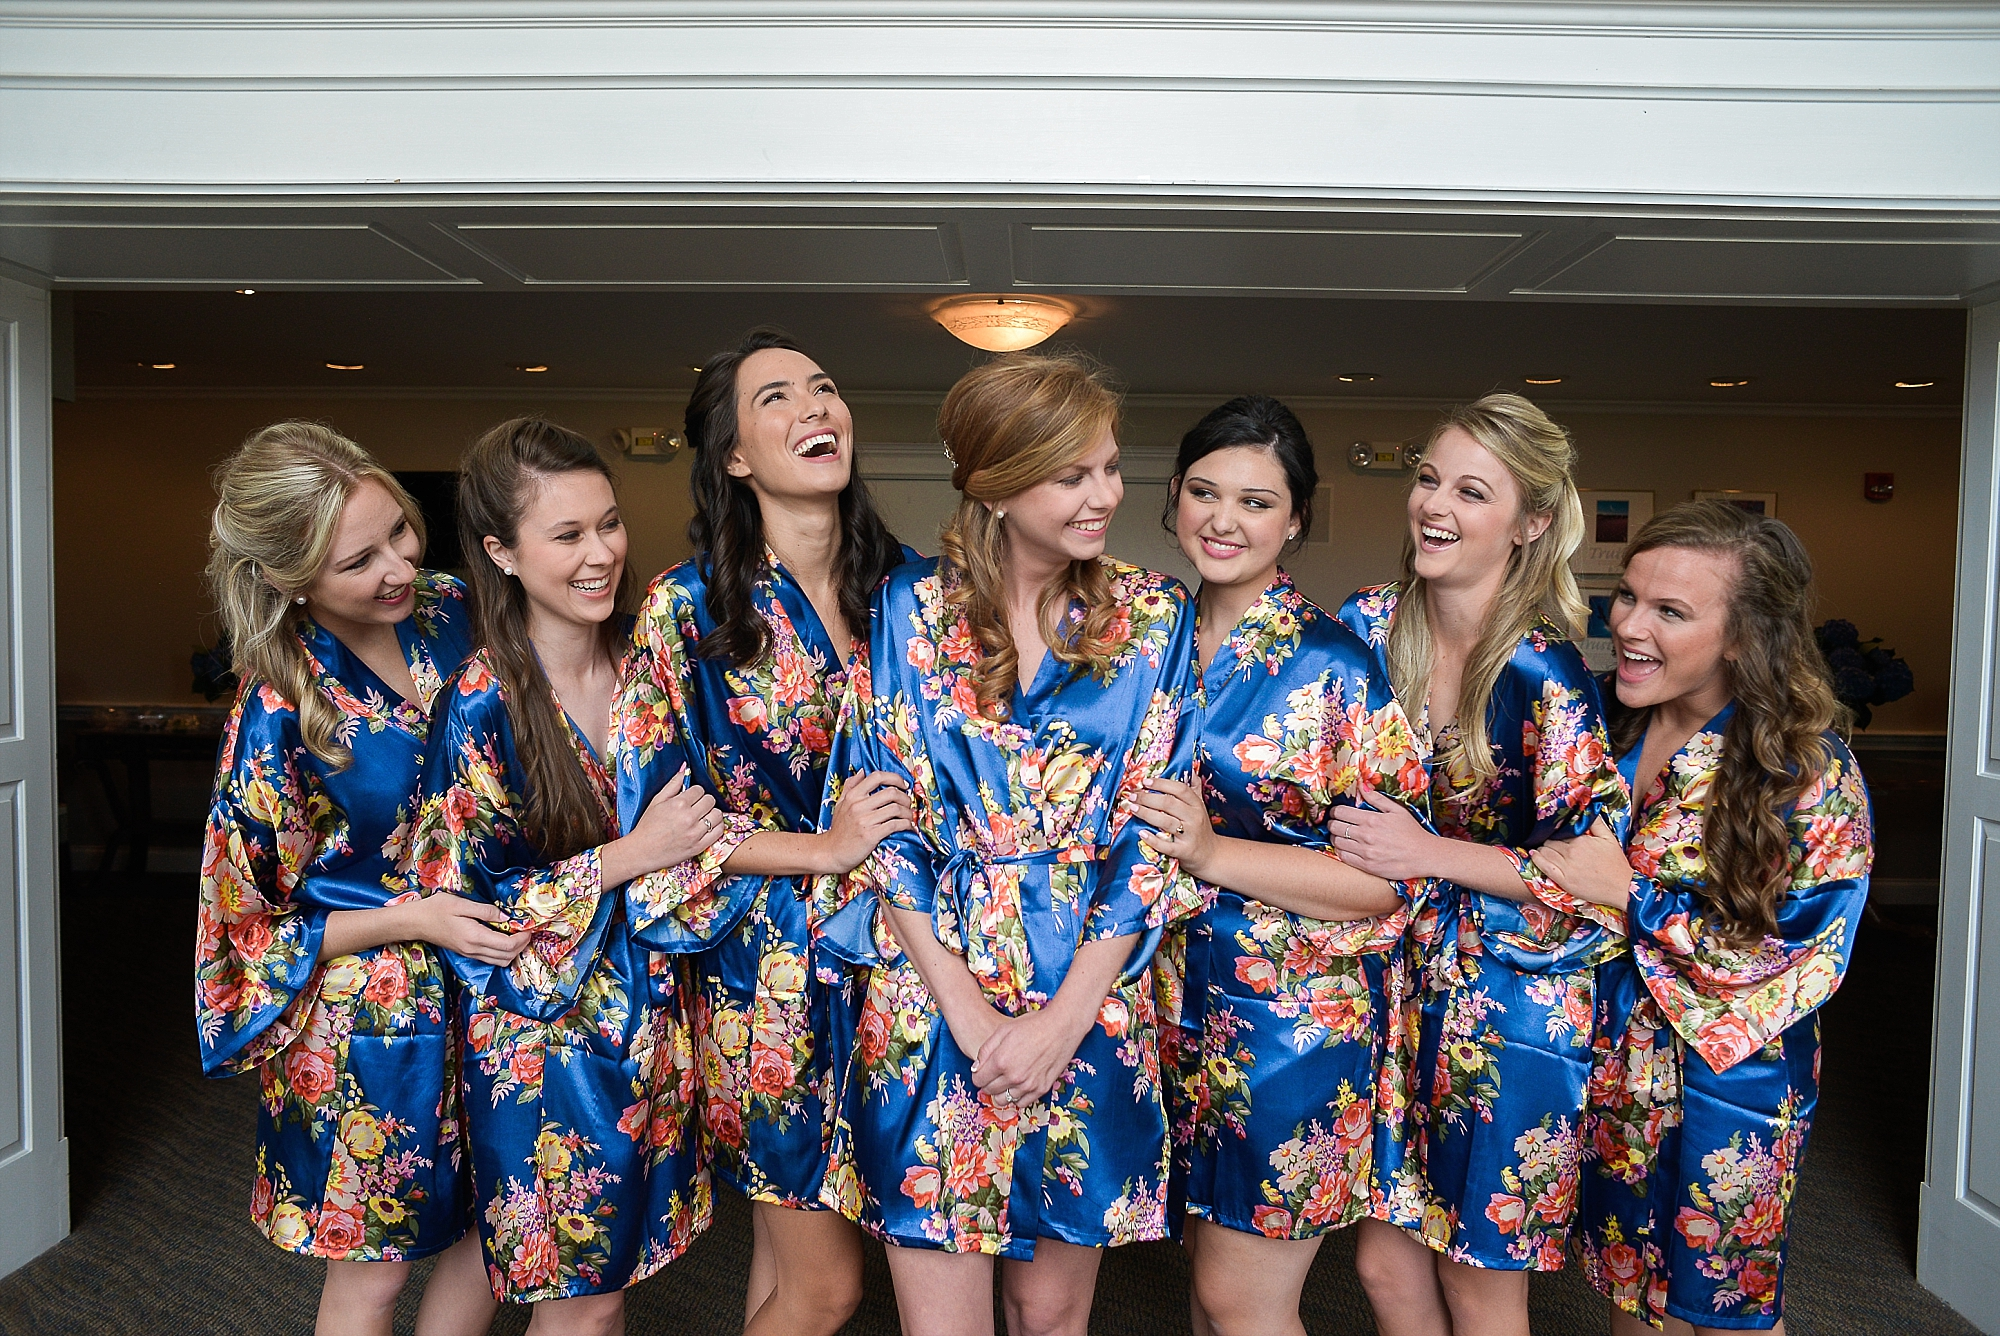 Grace and her bridesmaids were such a fun group!